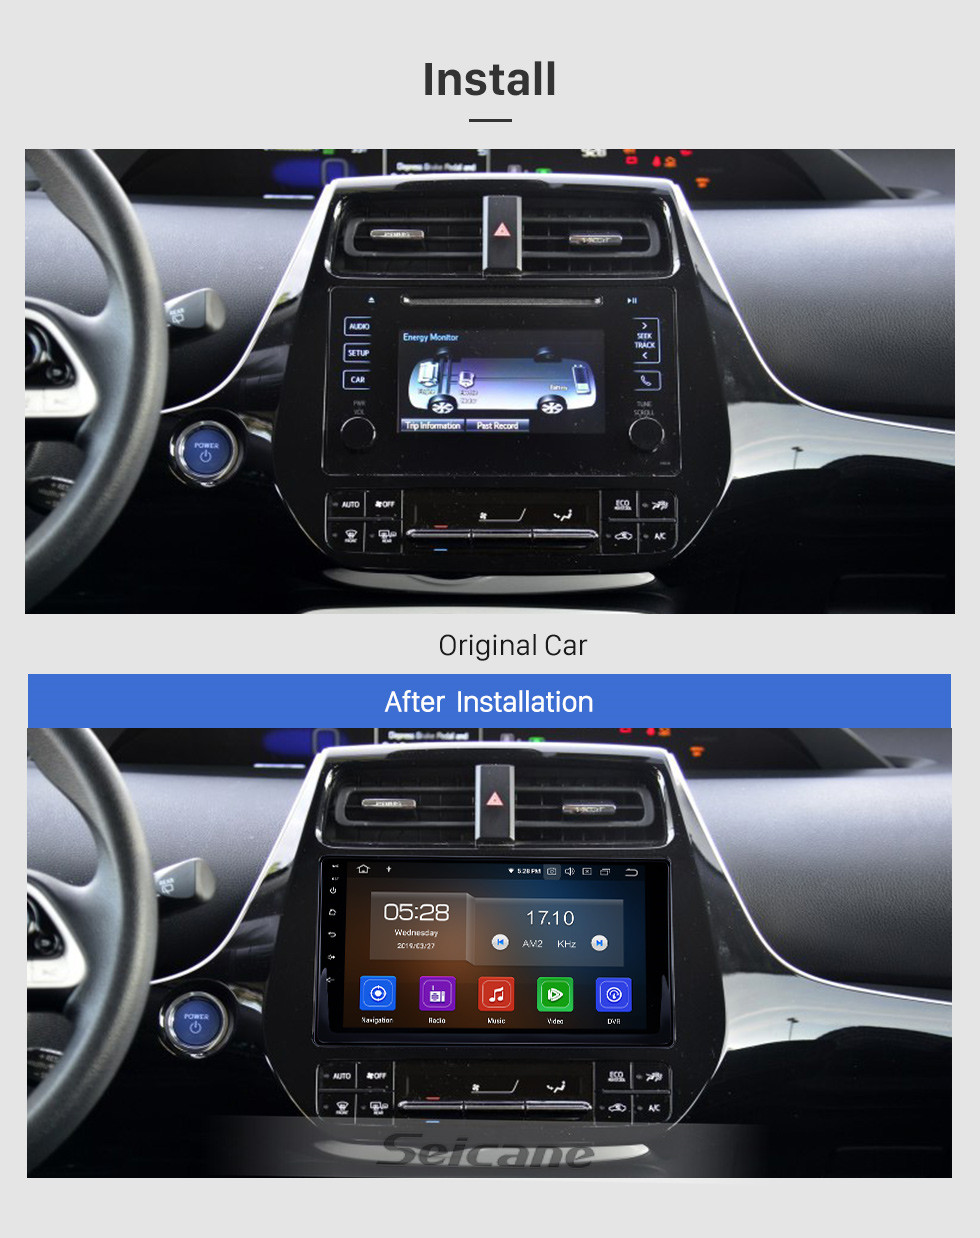 Seicane 9 inch Android 10.0 GPS Navigation Radio for 2016 Toyota Prius with HD Touchscreen Carplay Bluetooth WIFI AUX support TPMS Digital TV DVR